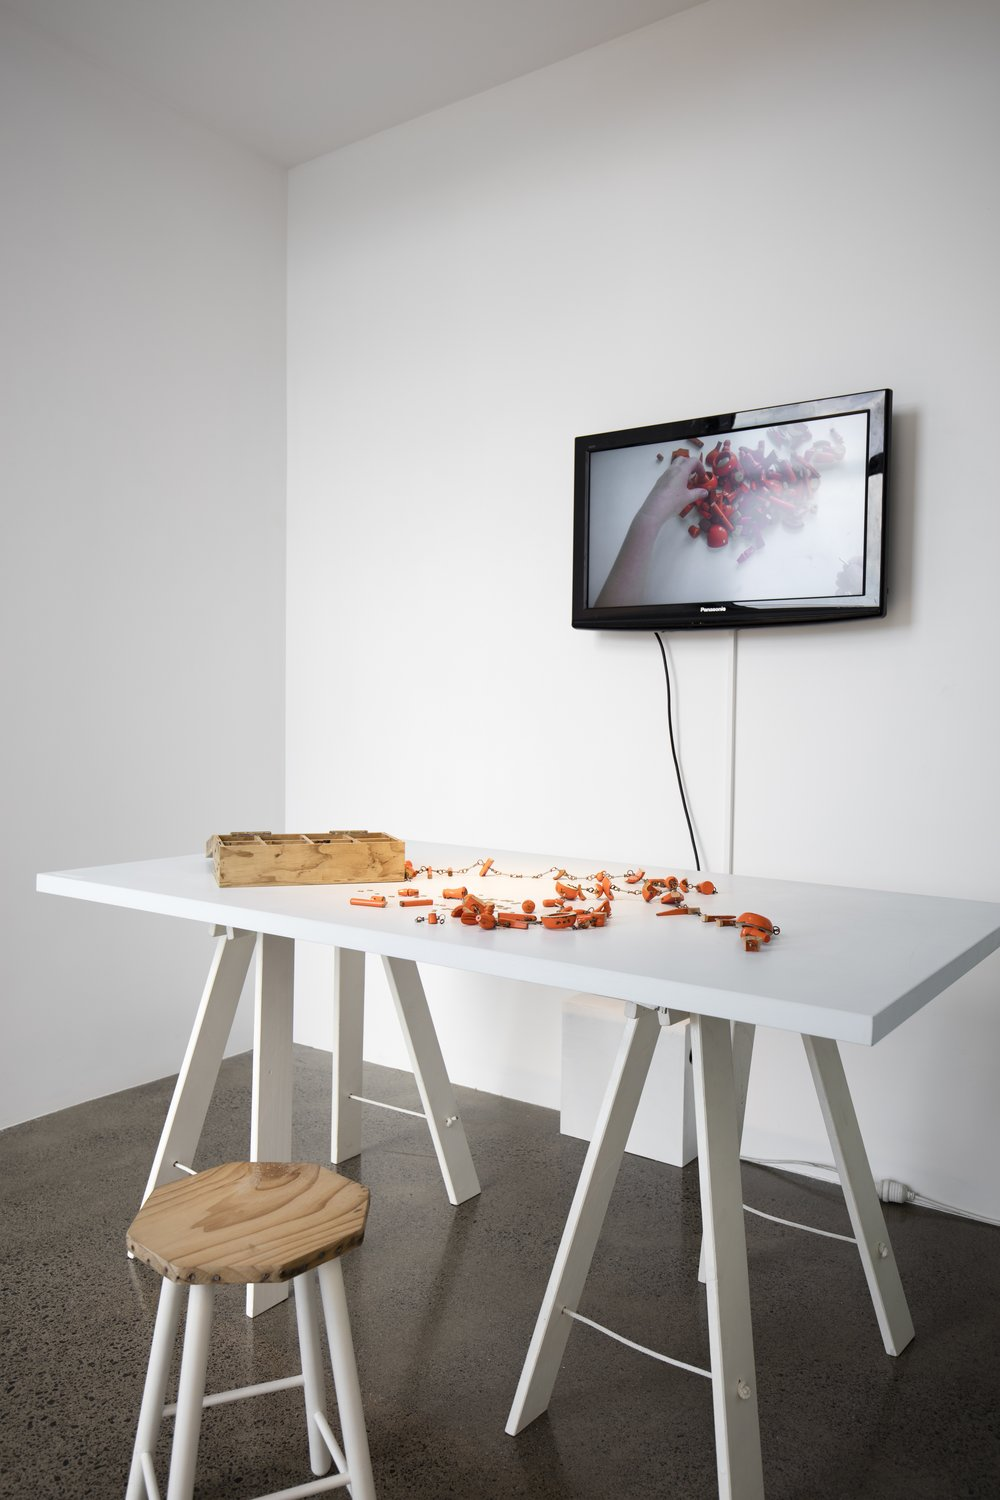 Sarah Walker Holt,  Kitset , 2014. Wood, acrylic paint, copper, brass, nuts and bolts, plywood box, digital video (5.39 mins), trestle table, stool. Courtesy of the artist and Te Uru Waitākere Contemporary Gallery. Photo: Sam Hartnett.